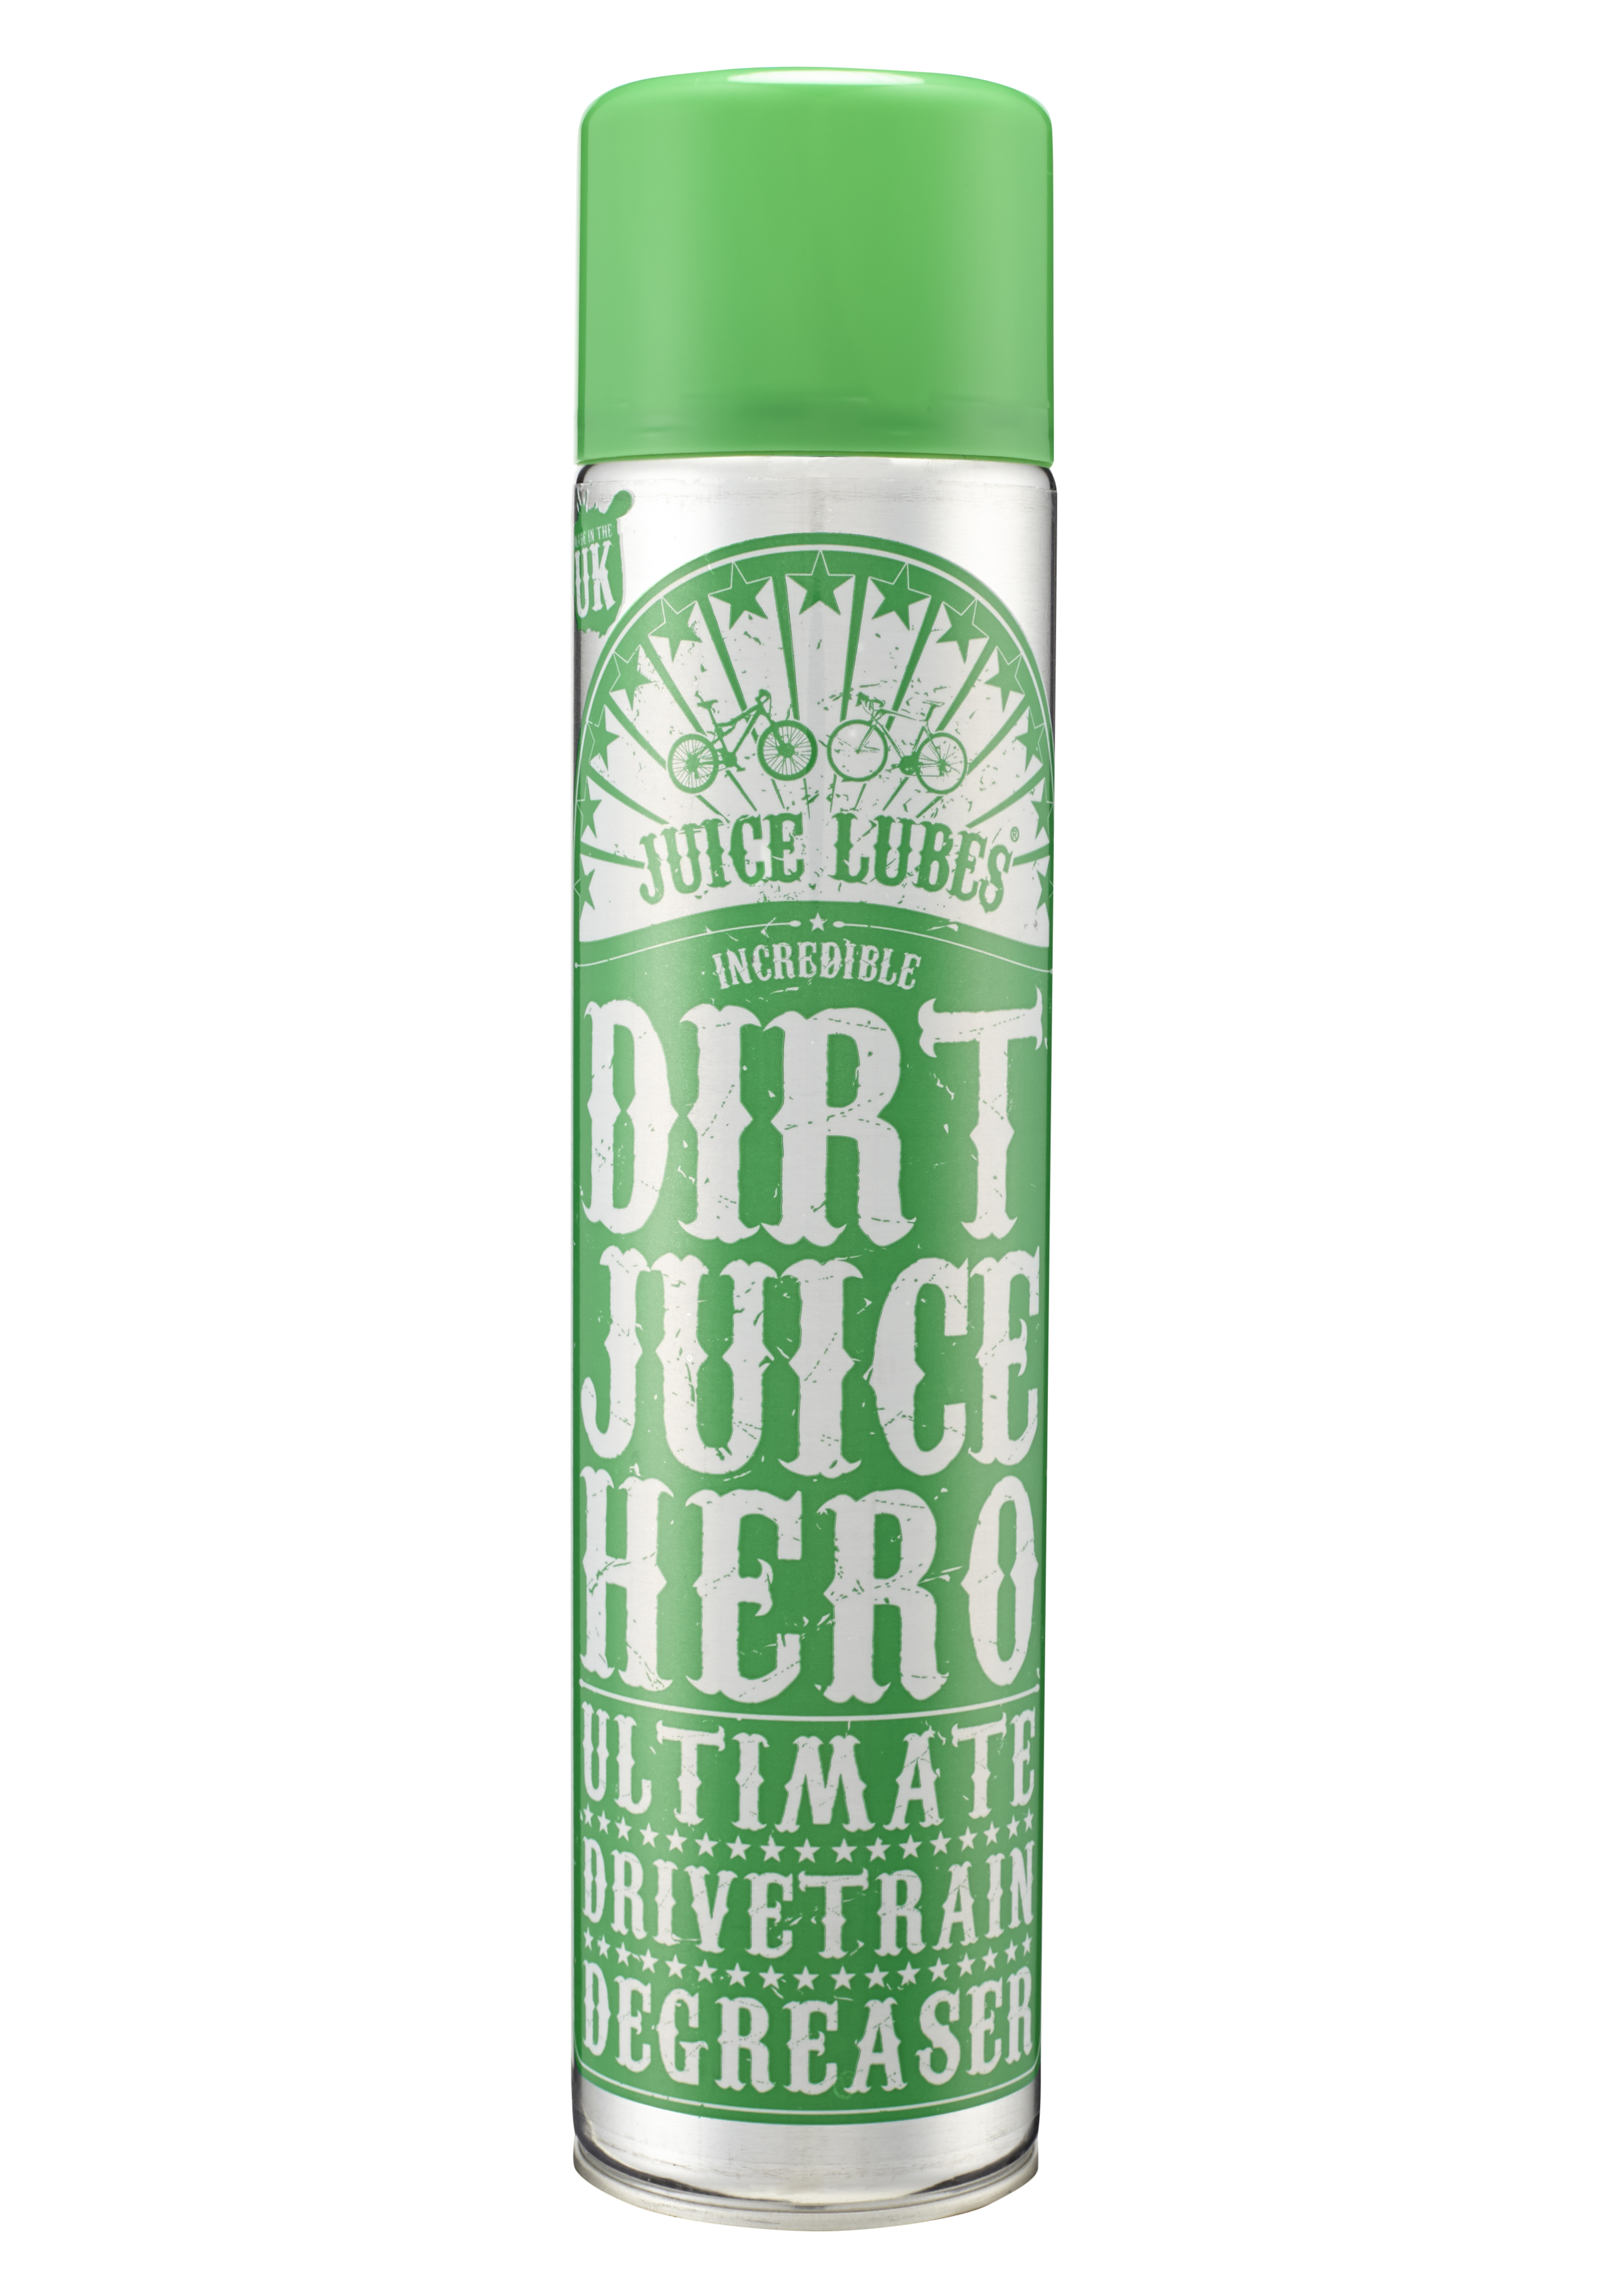 dirt-juice-hero,-super-power-degreaser,-600ml-djh1